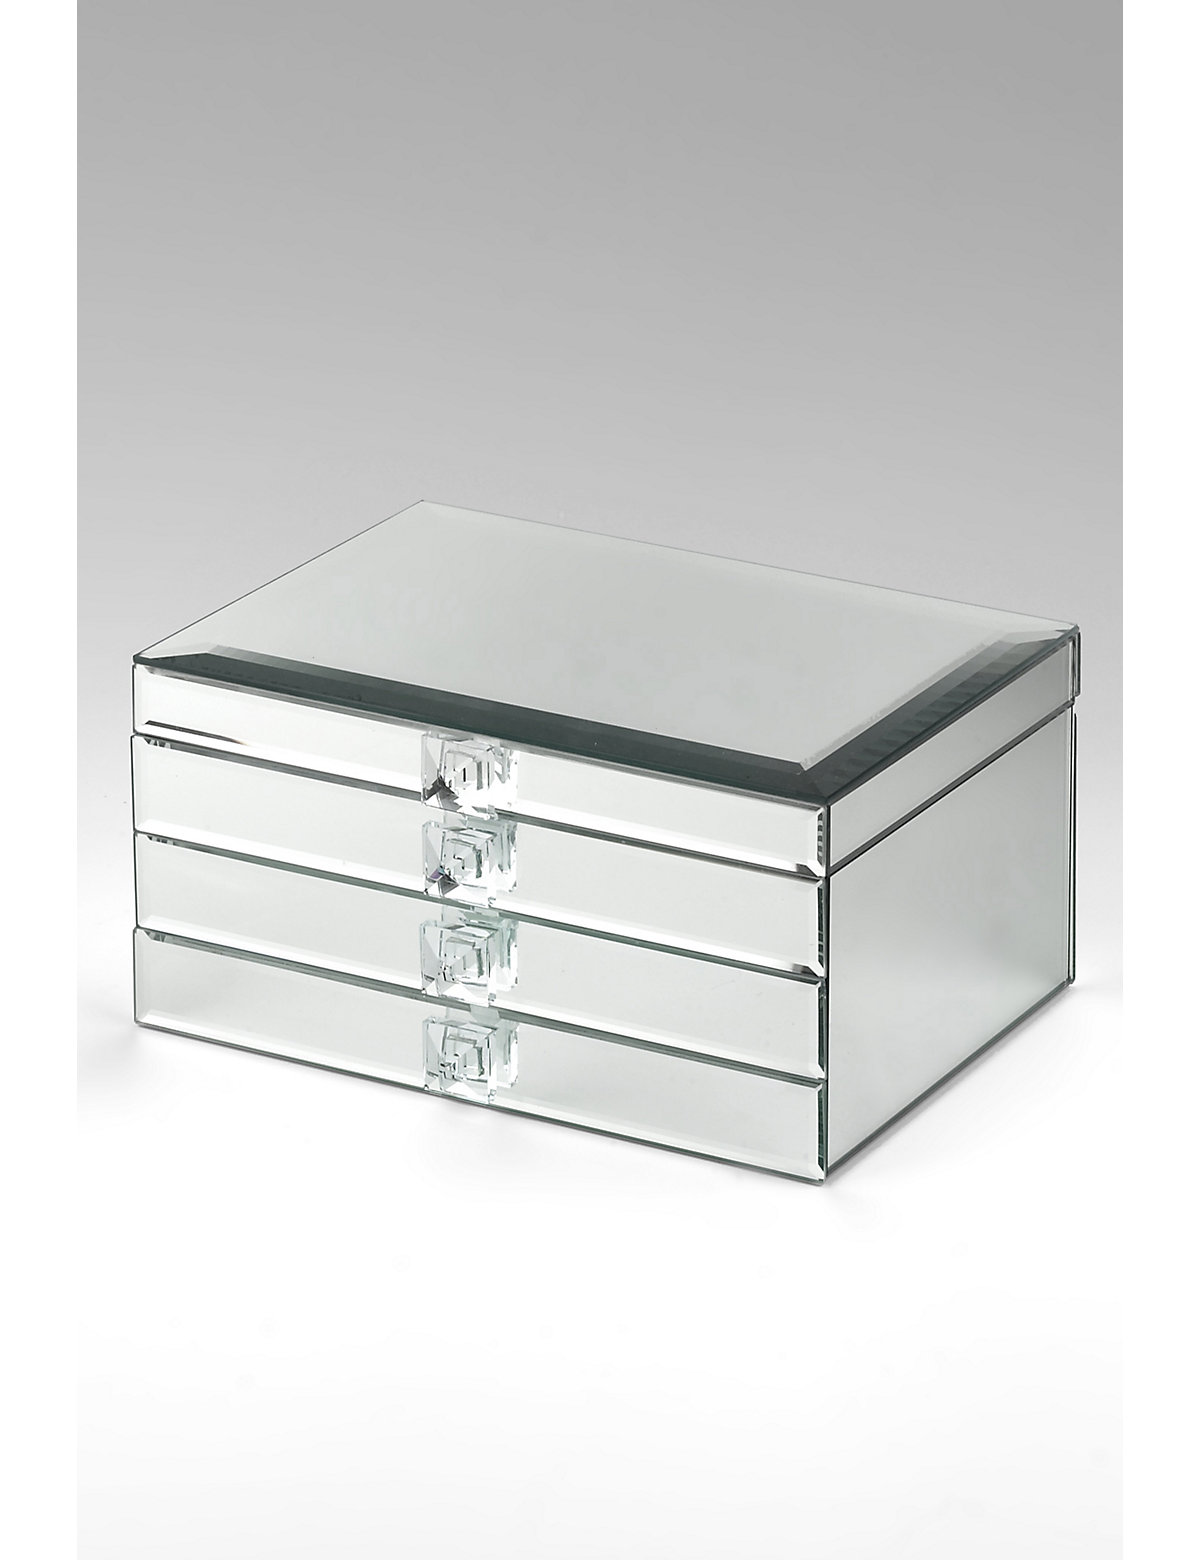 top 10 cheapest mirrored jewellery box prices best uk ForMirror Jewellery Box